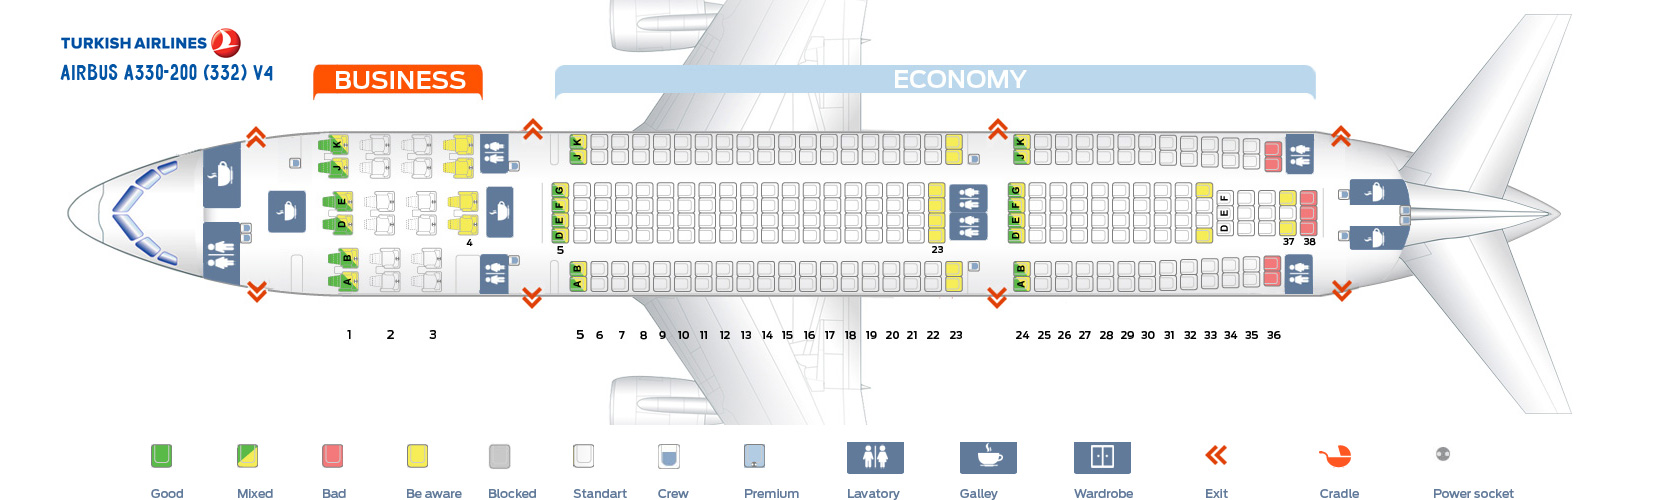 Seat Map And Seating Chart Turkish Airlines Airbus A330 200 V4